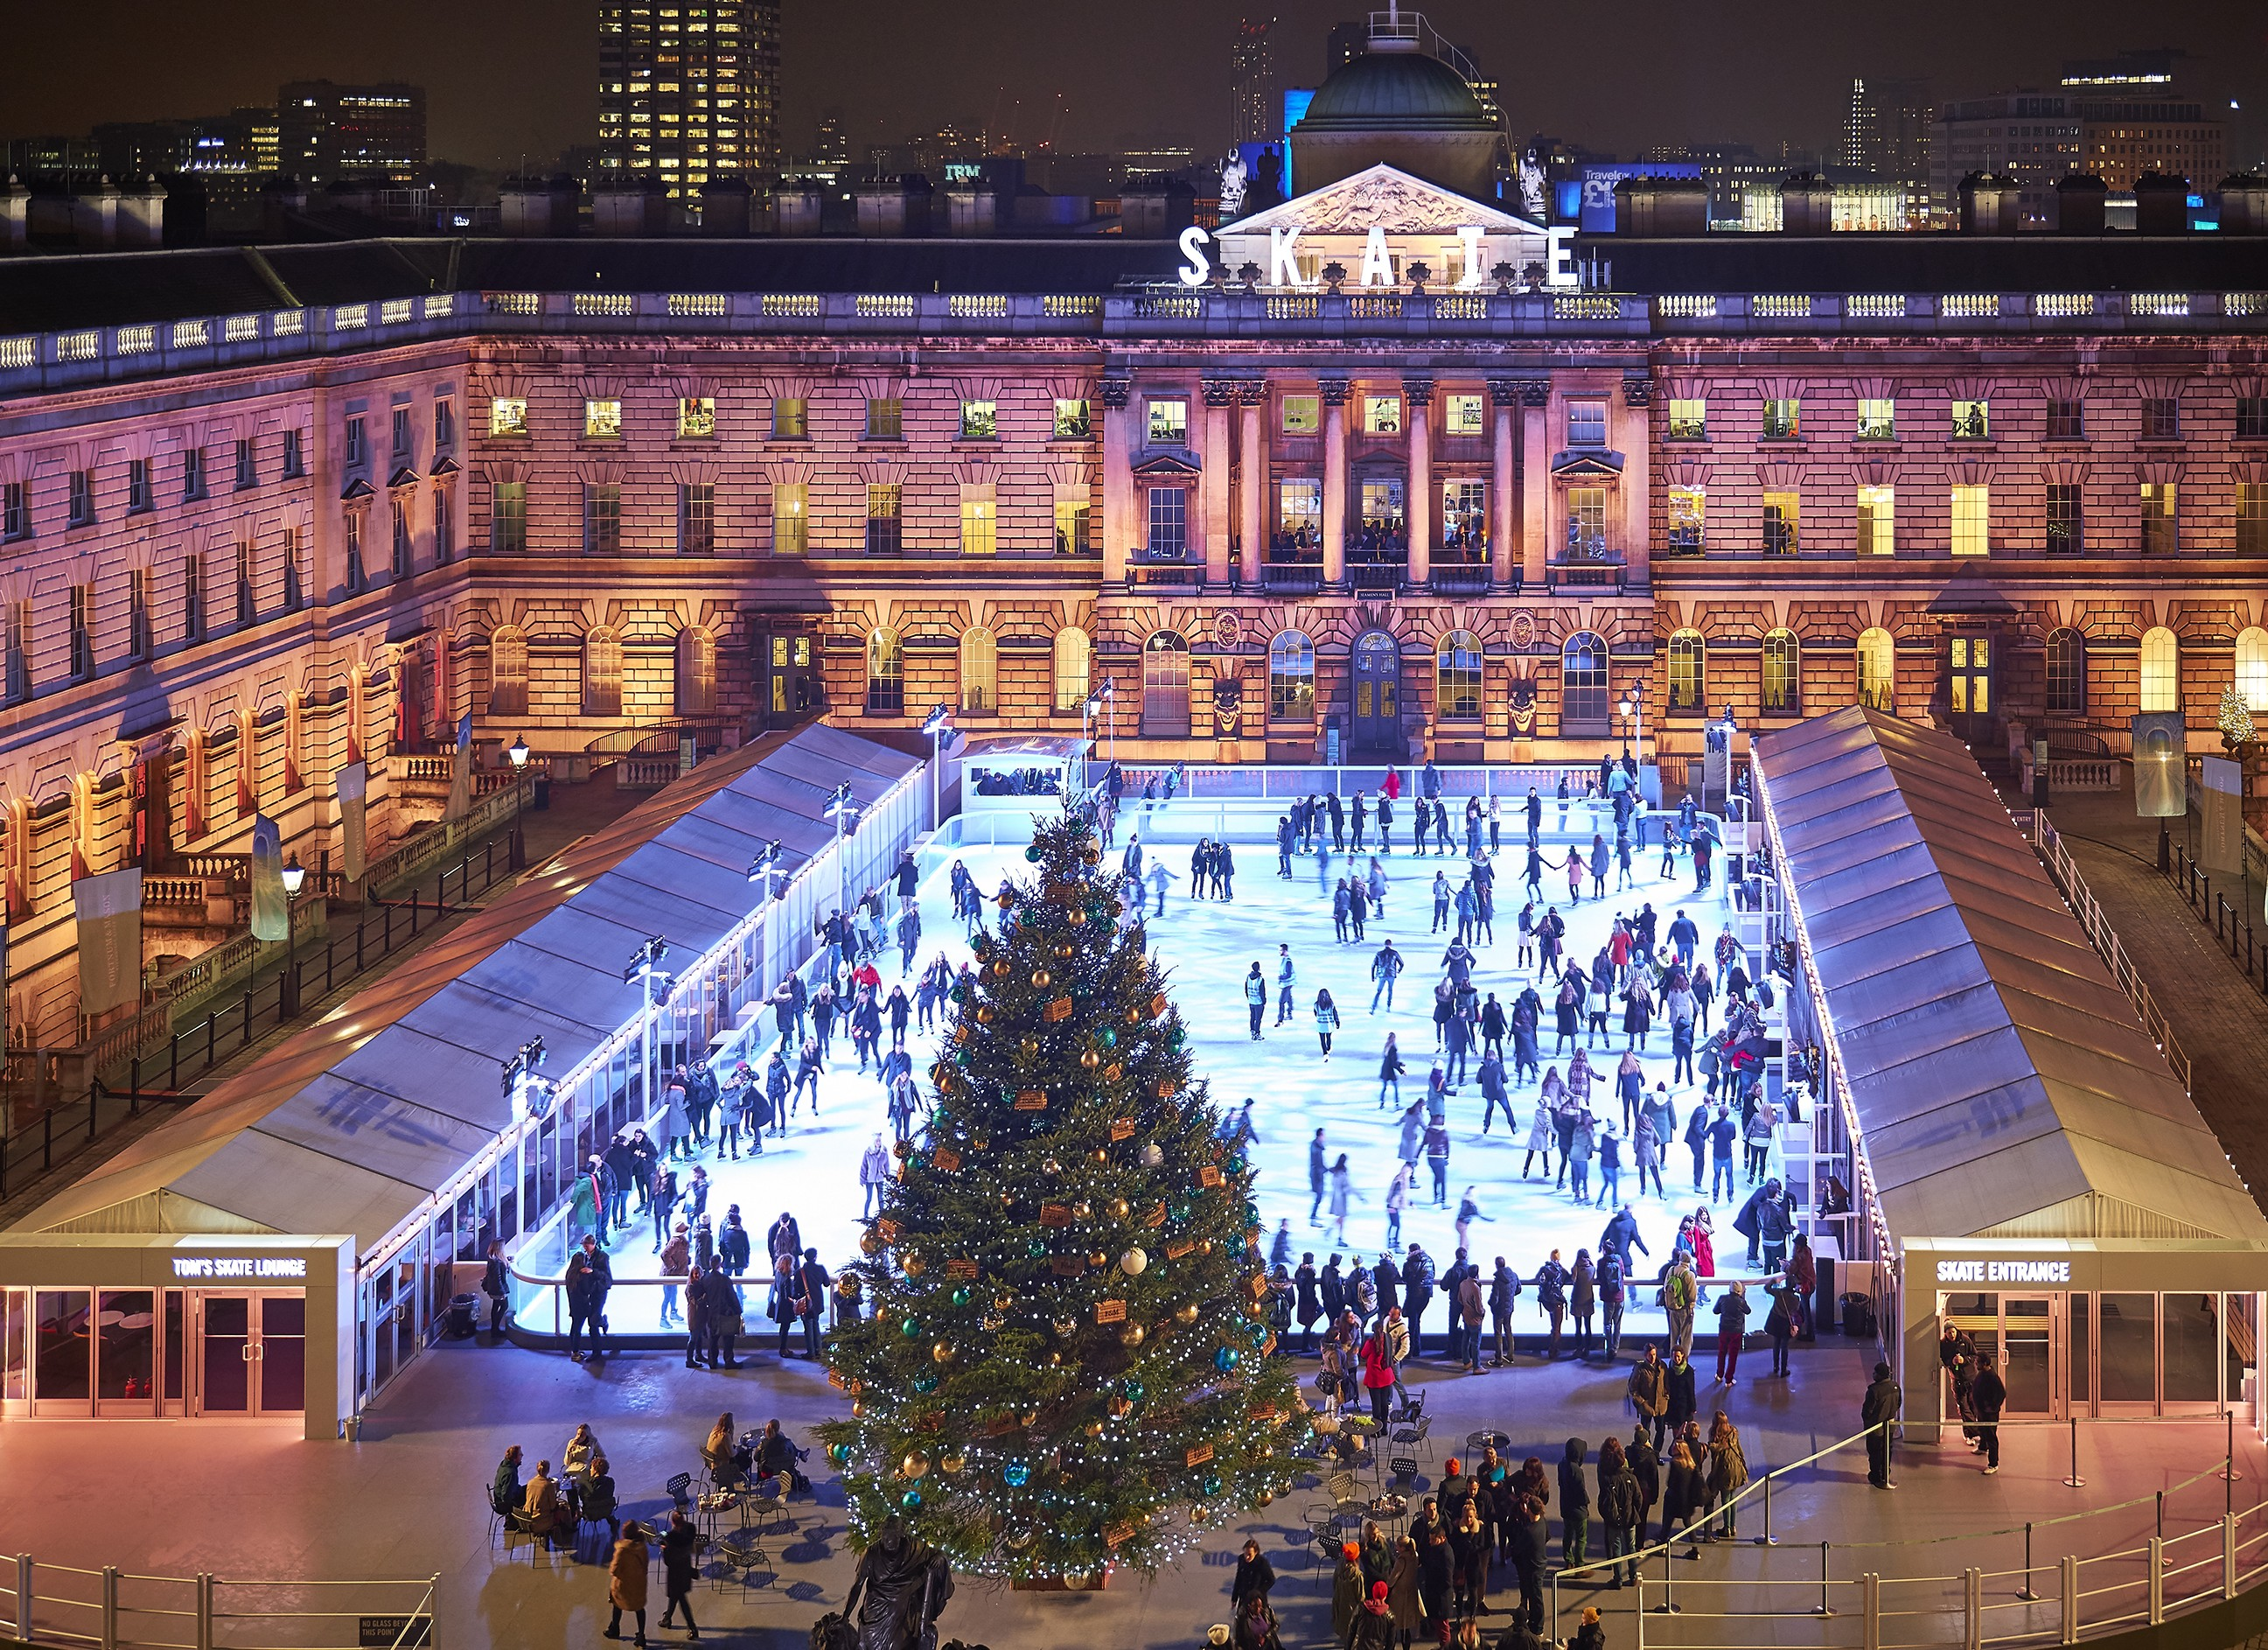 top 5 outdoor ice skating rinks in europe this christmas hero